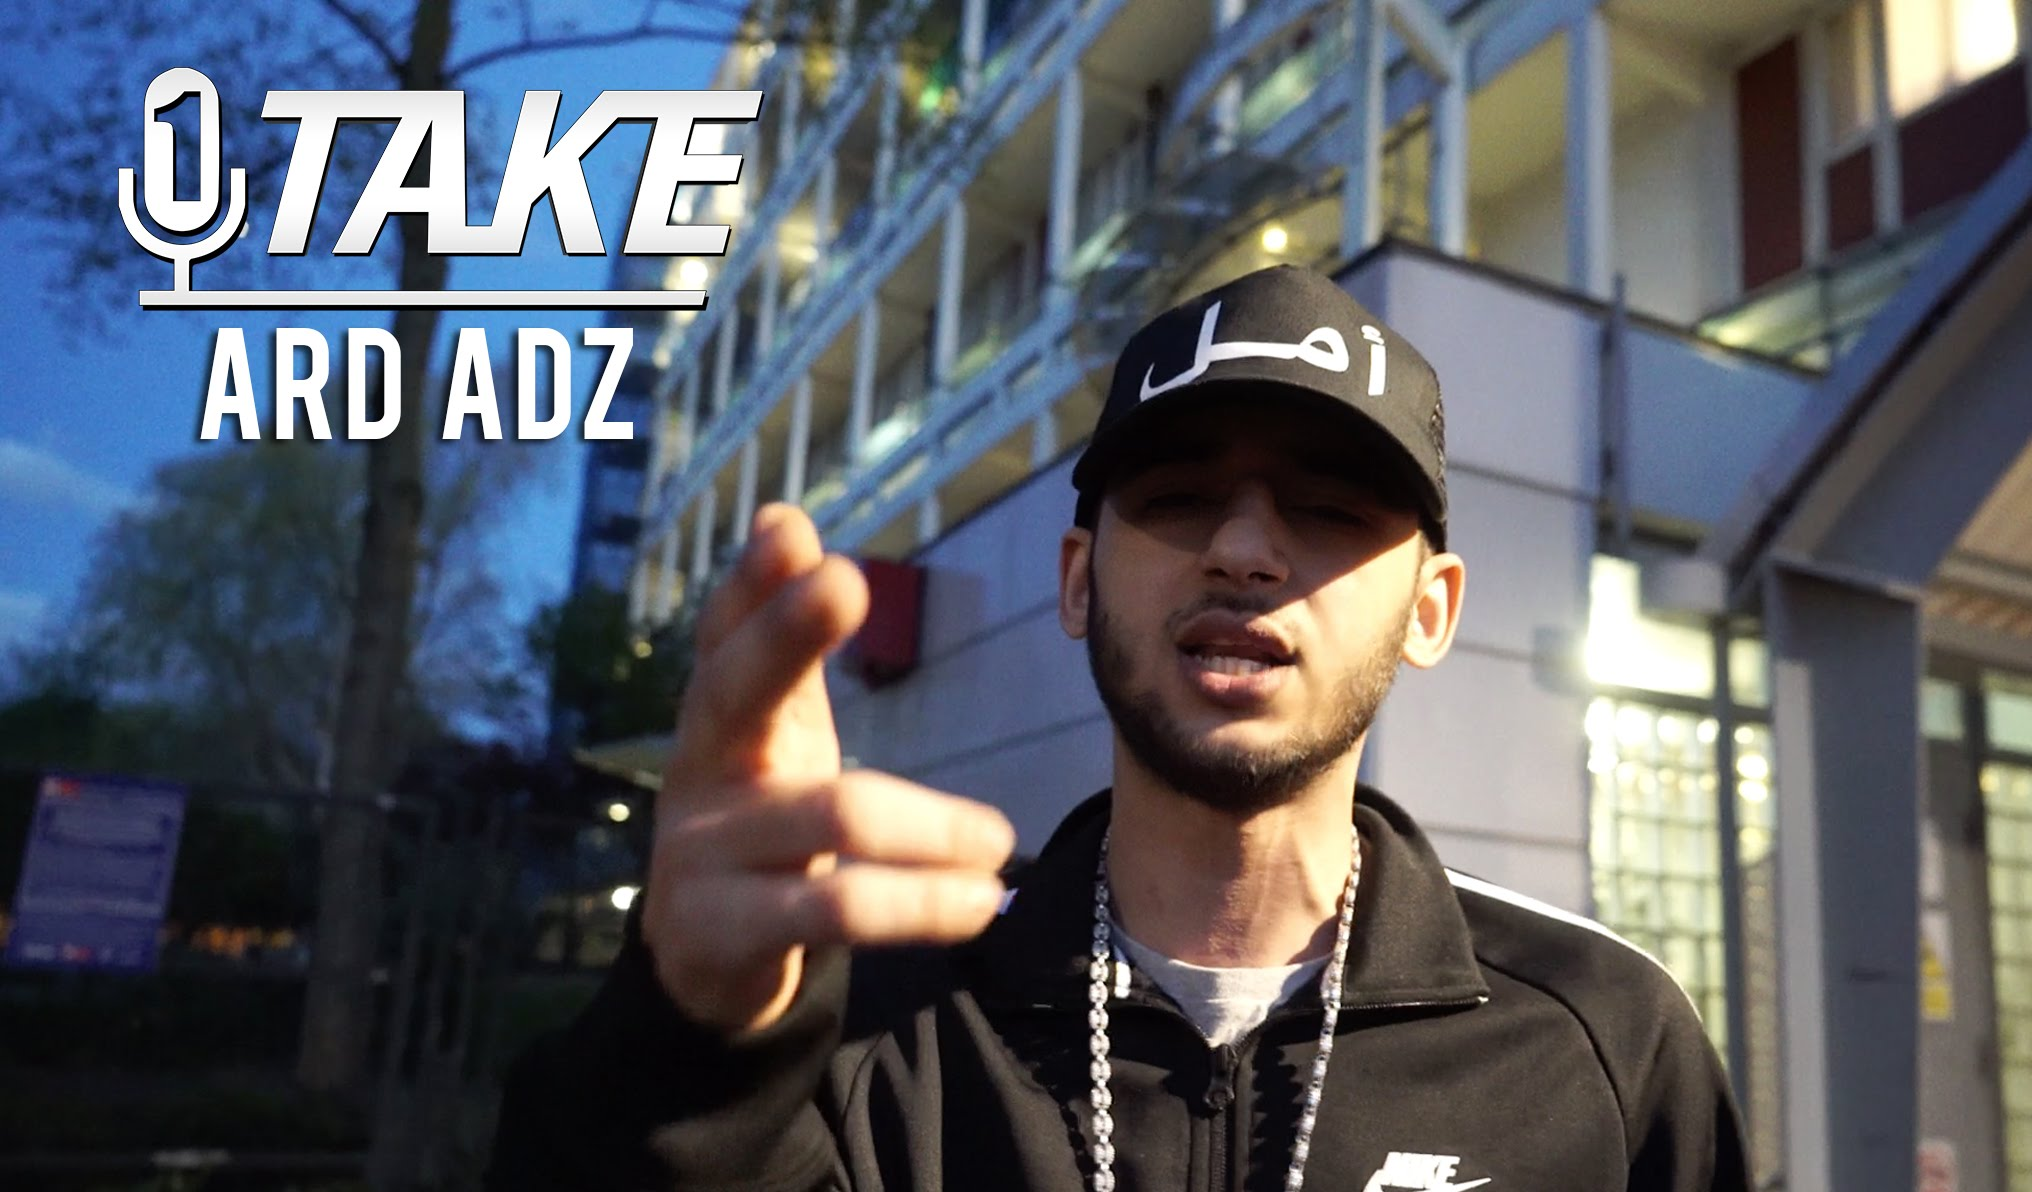 ard-adz-1take-freestyle-video